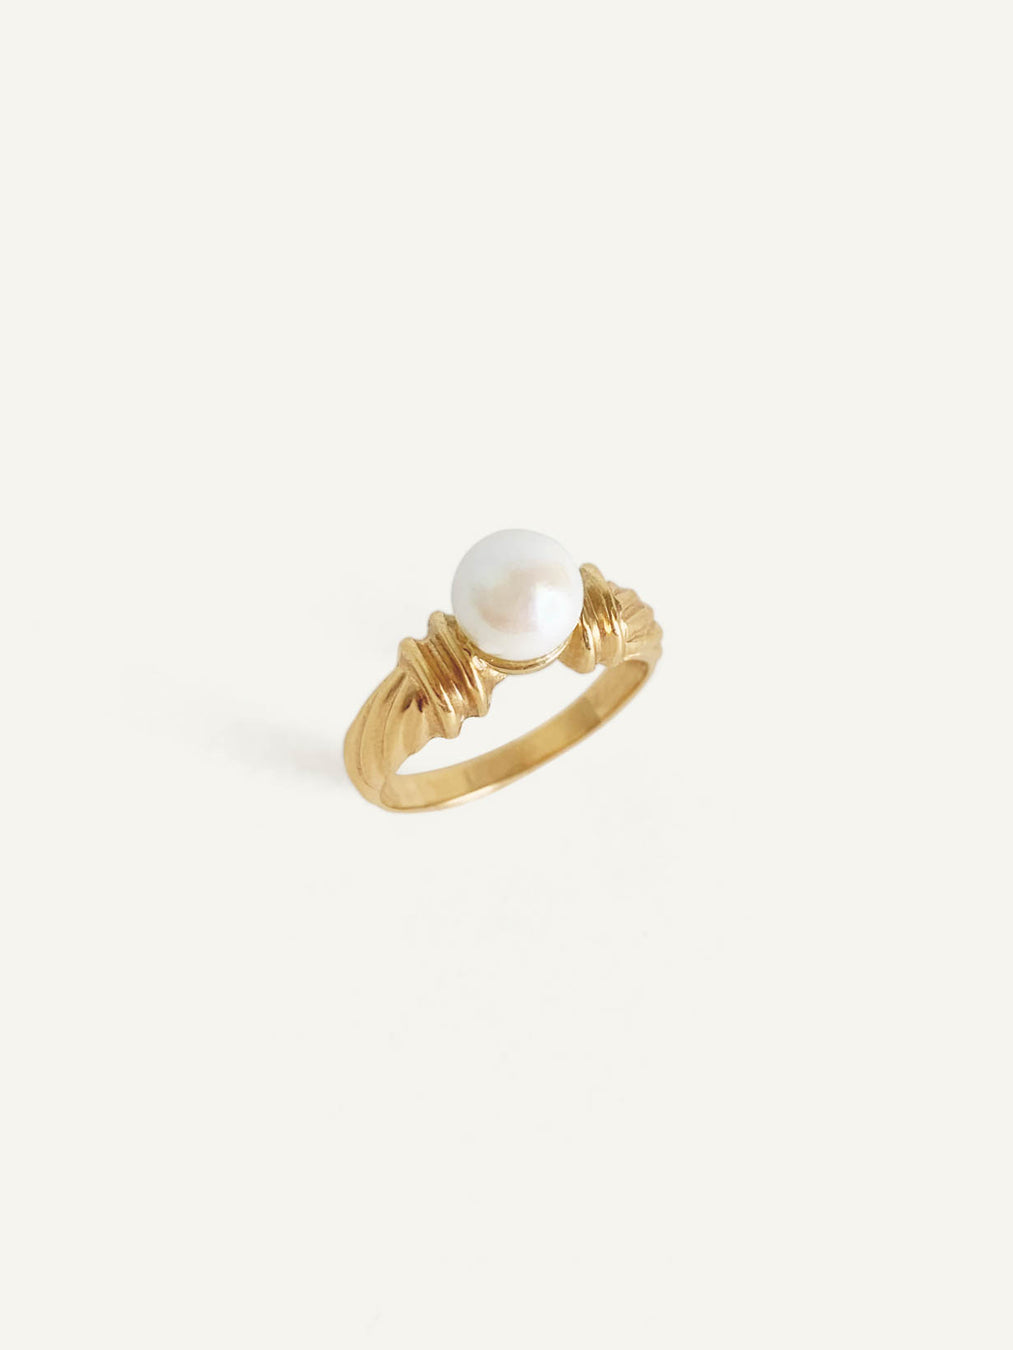 14k Gold with Akoya Pearl Ring